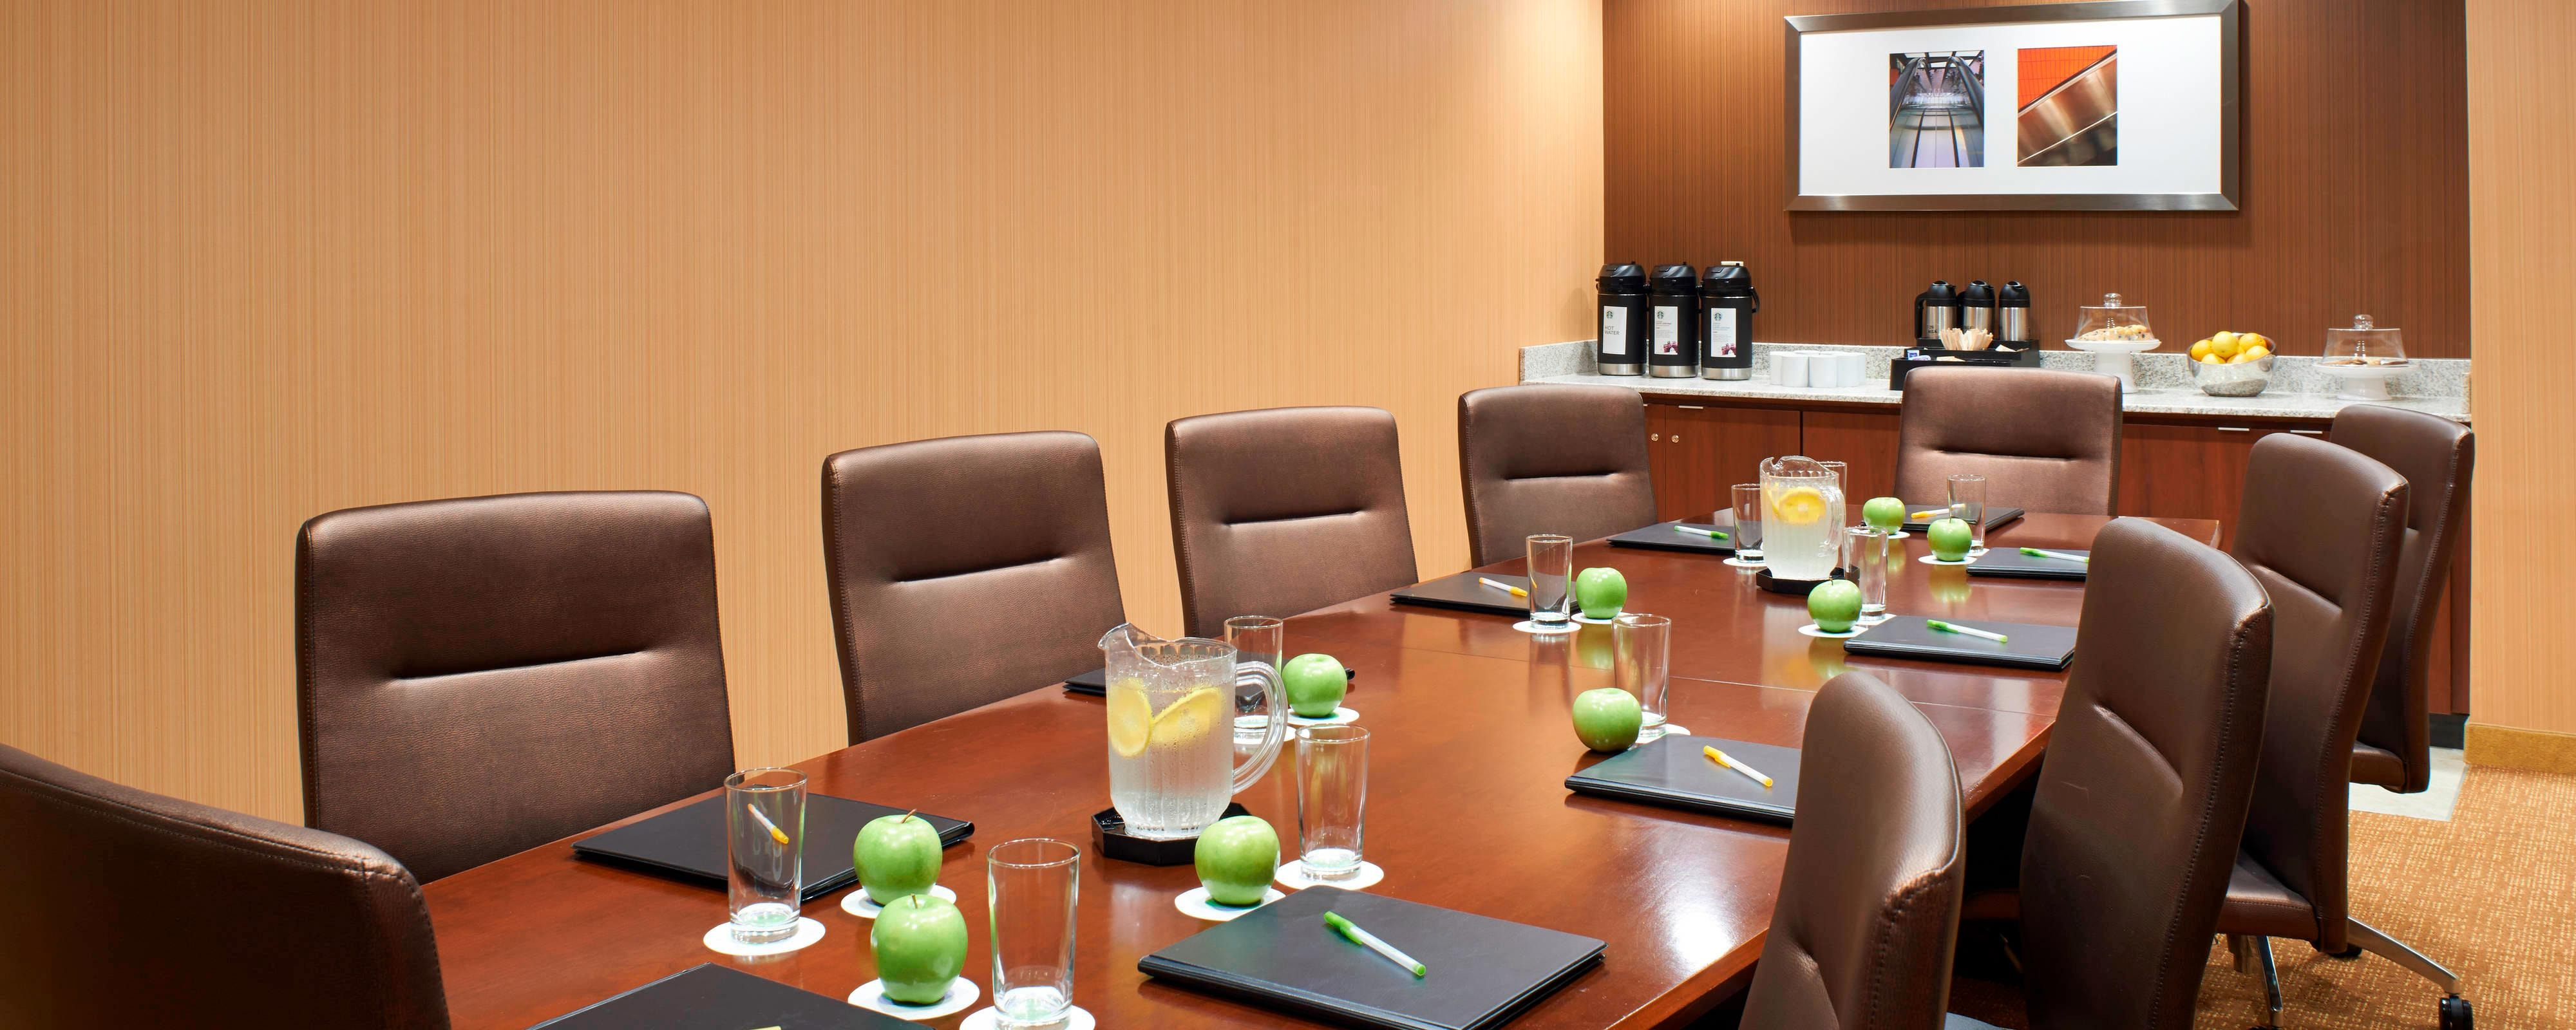 Meeting Rooms Dundee